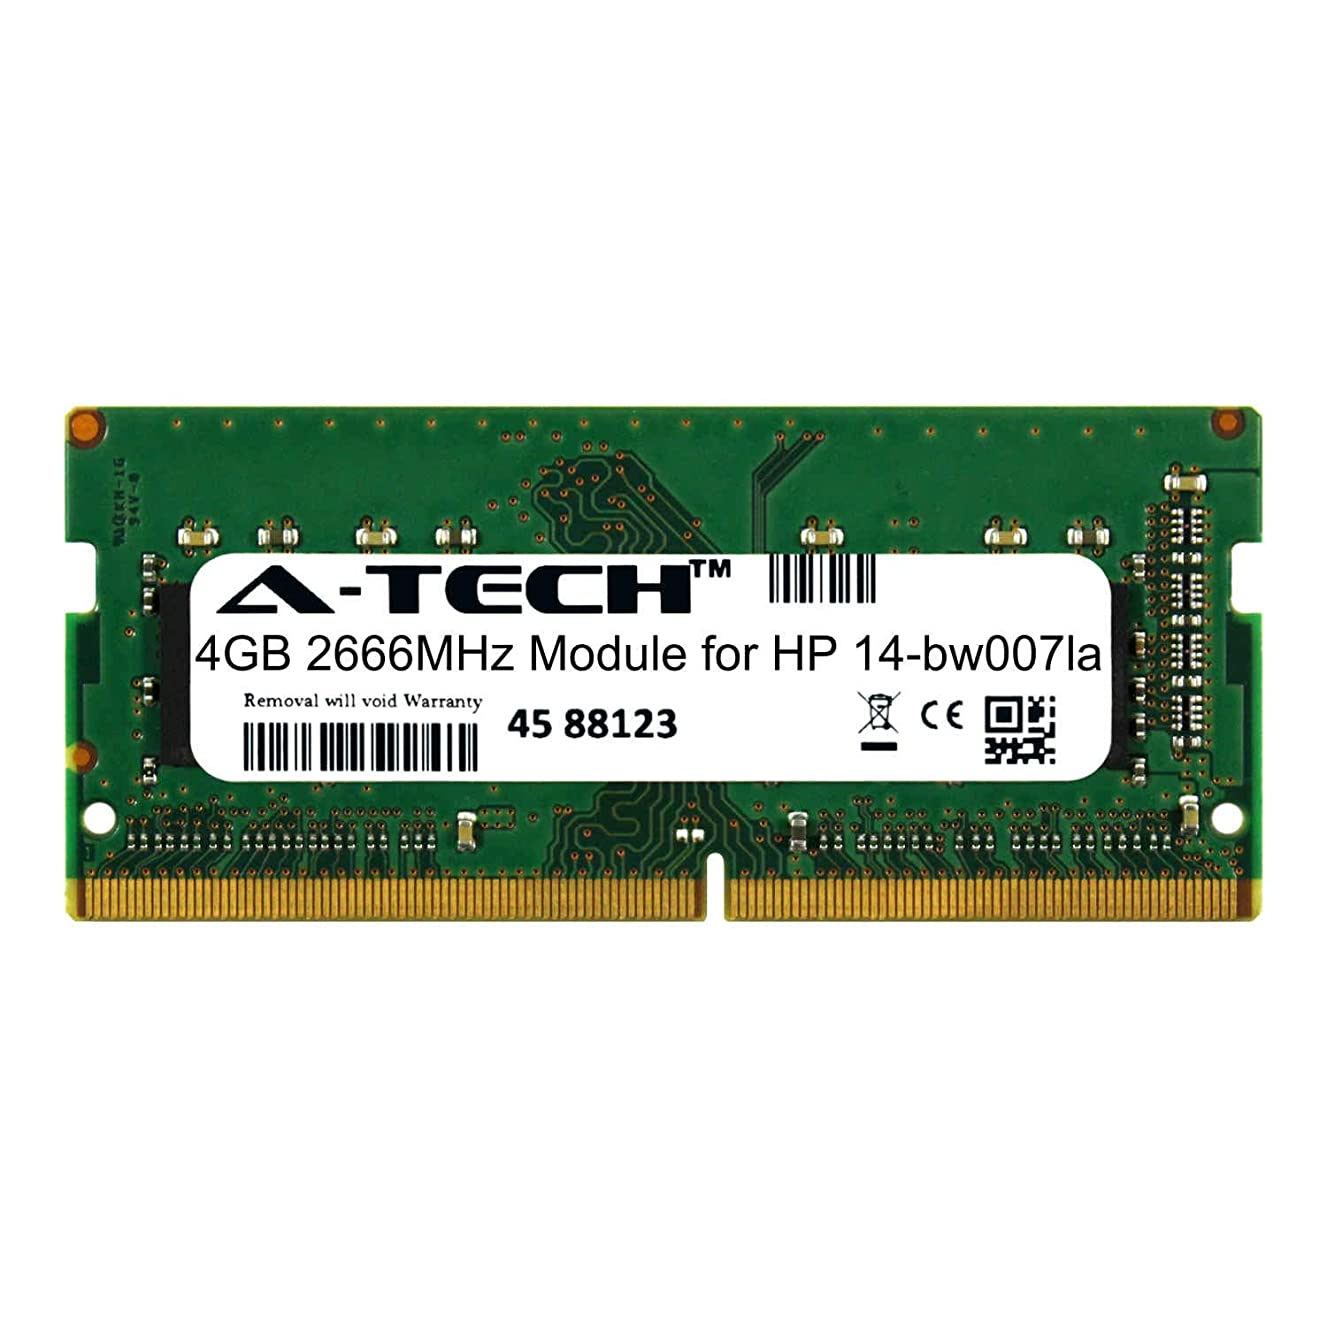 A-Tech 4GB Module for HP 14-bw007la Laptop & Notebook Compatible DDR4 2666Mhz Memory Ram (ATMS378662A25977X1)